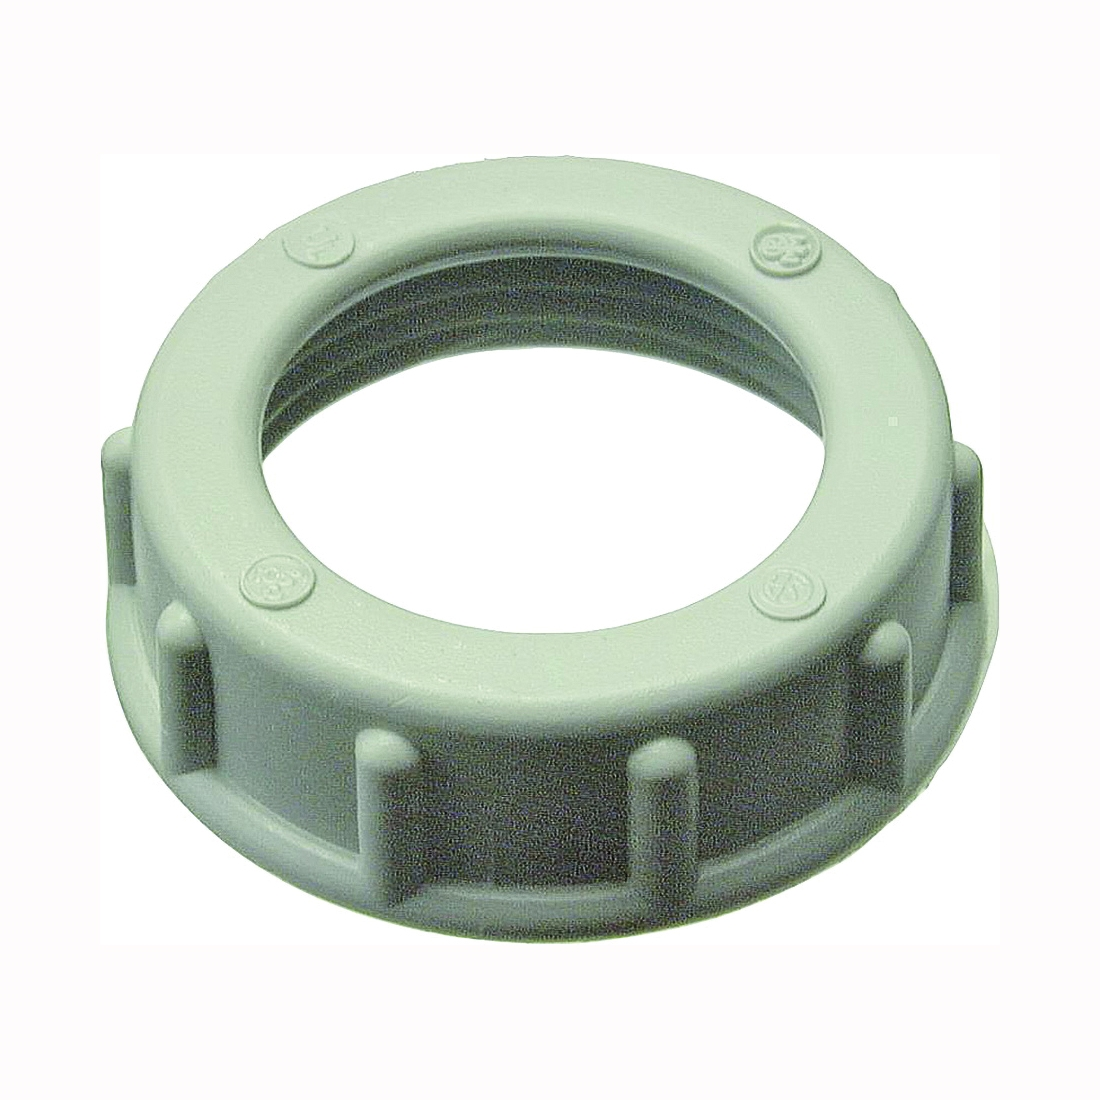 Picture of Halex 75225 Conduit Bushing, 2-1/2 in Trade, Thermoplastic